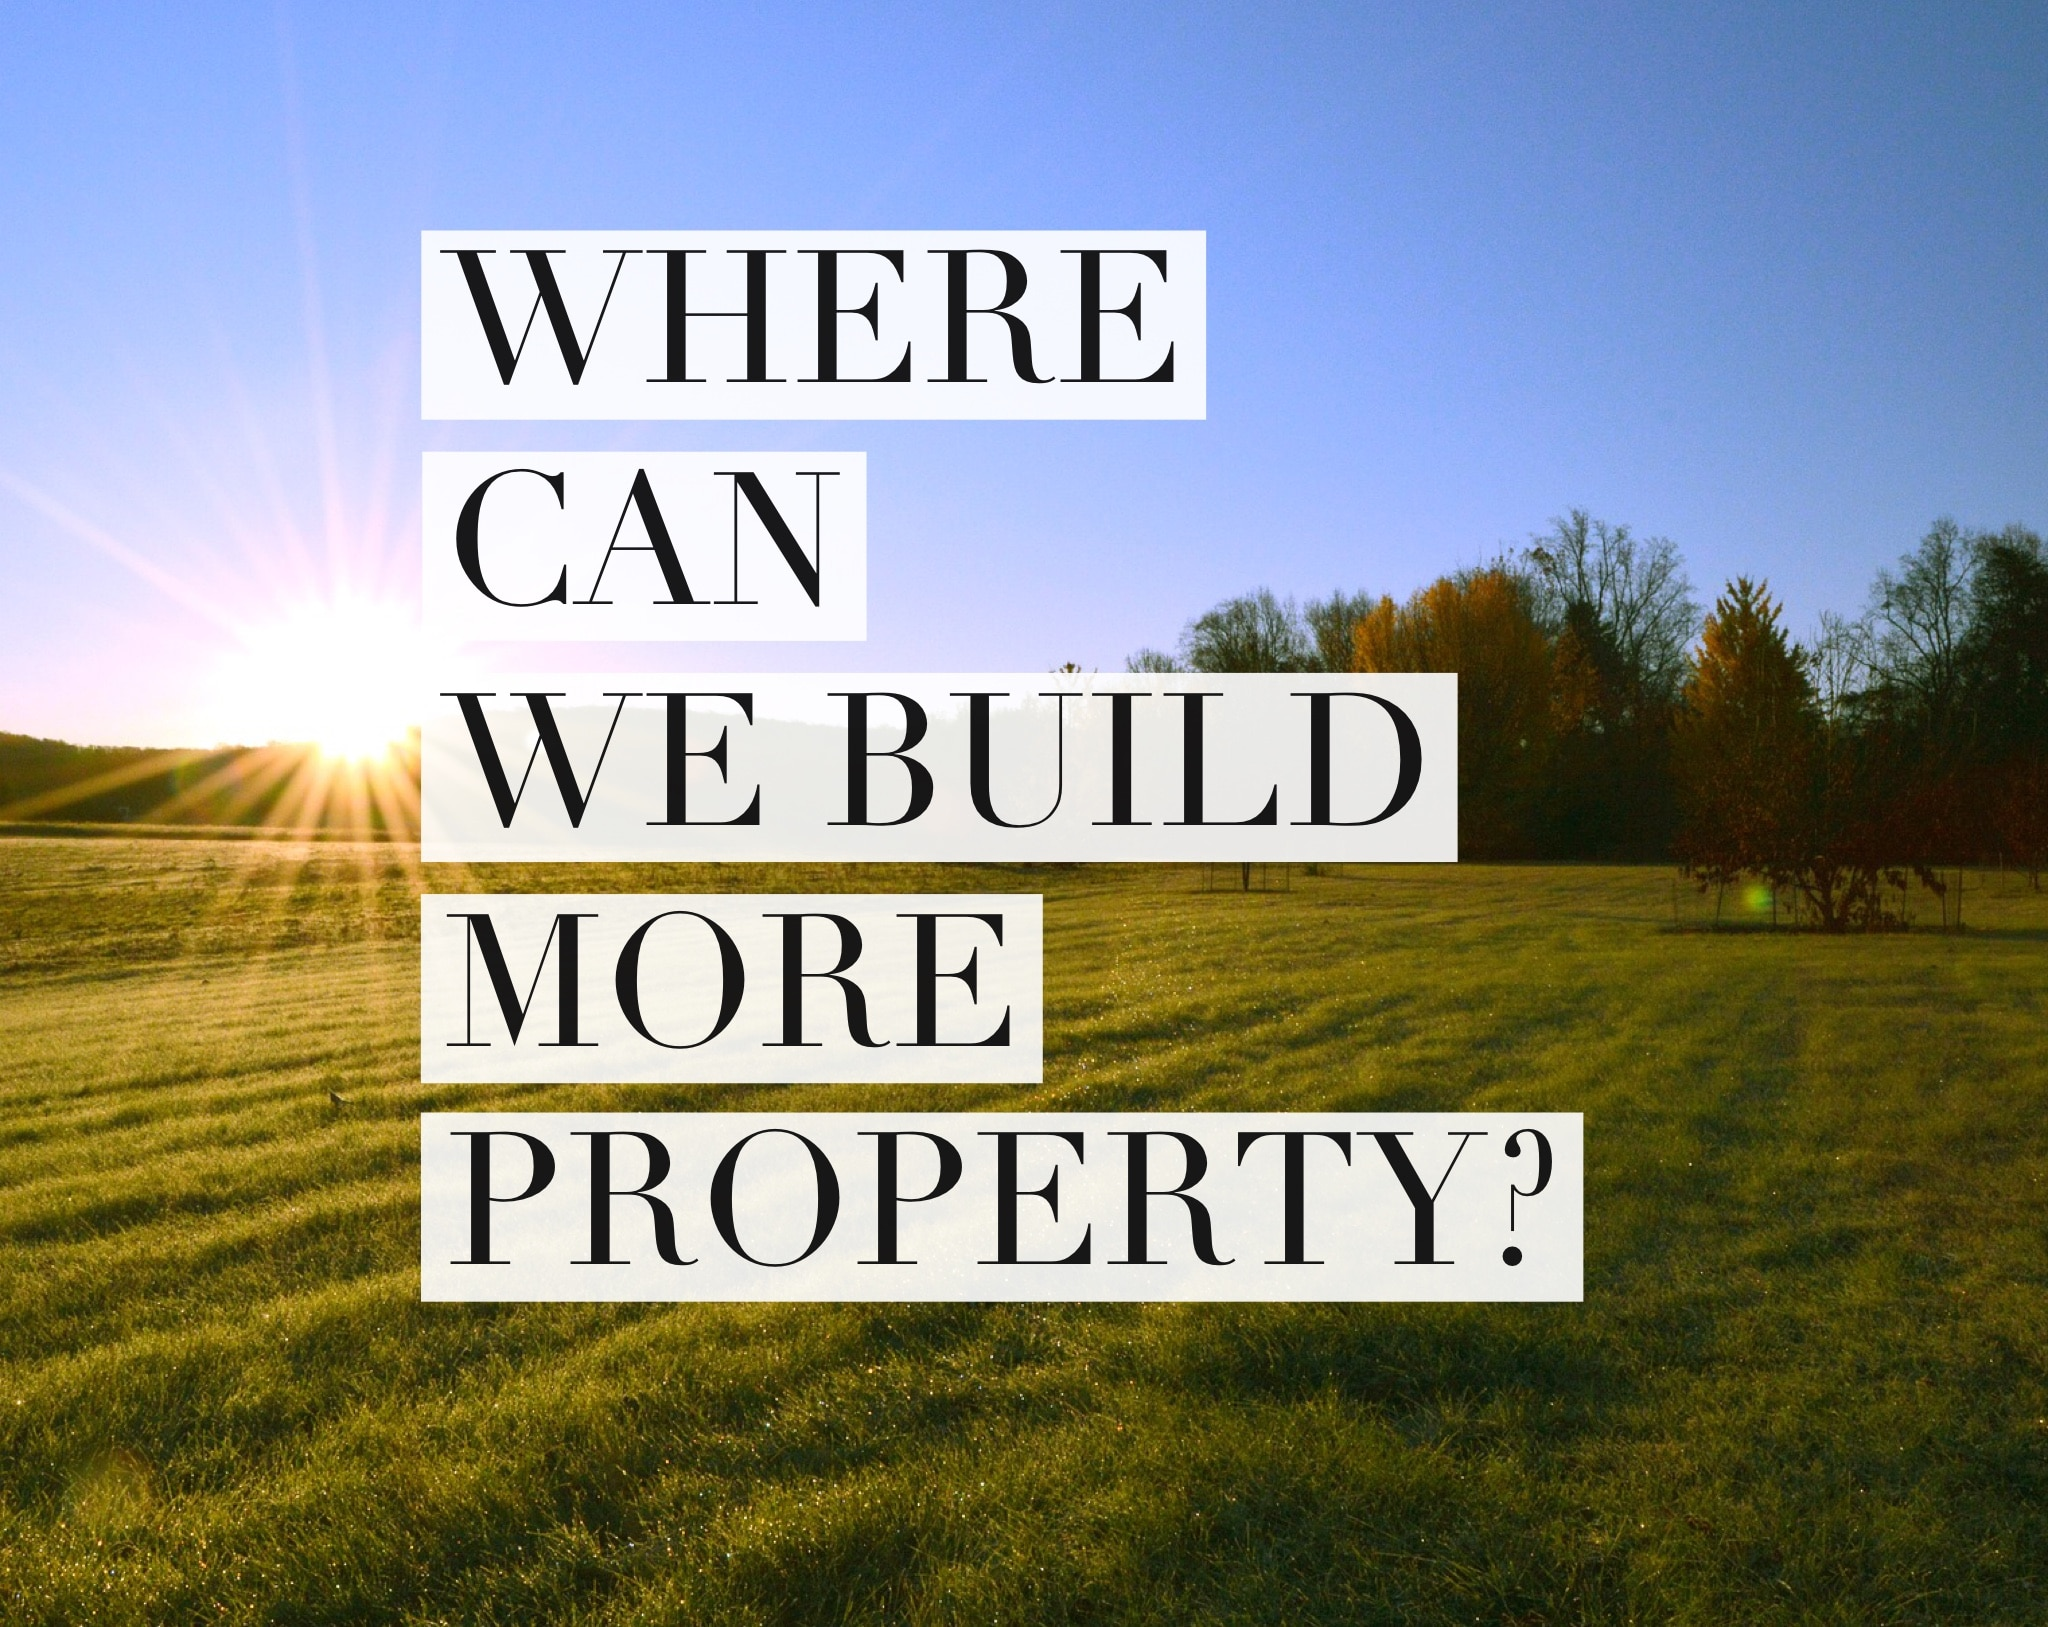 10.95% of Canterbury is Built on … Building Plot Dilemma or Not?